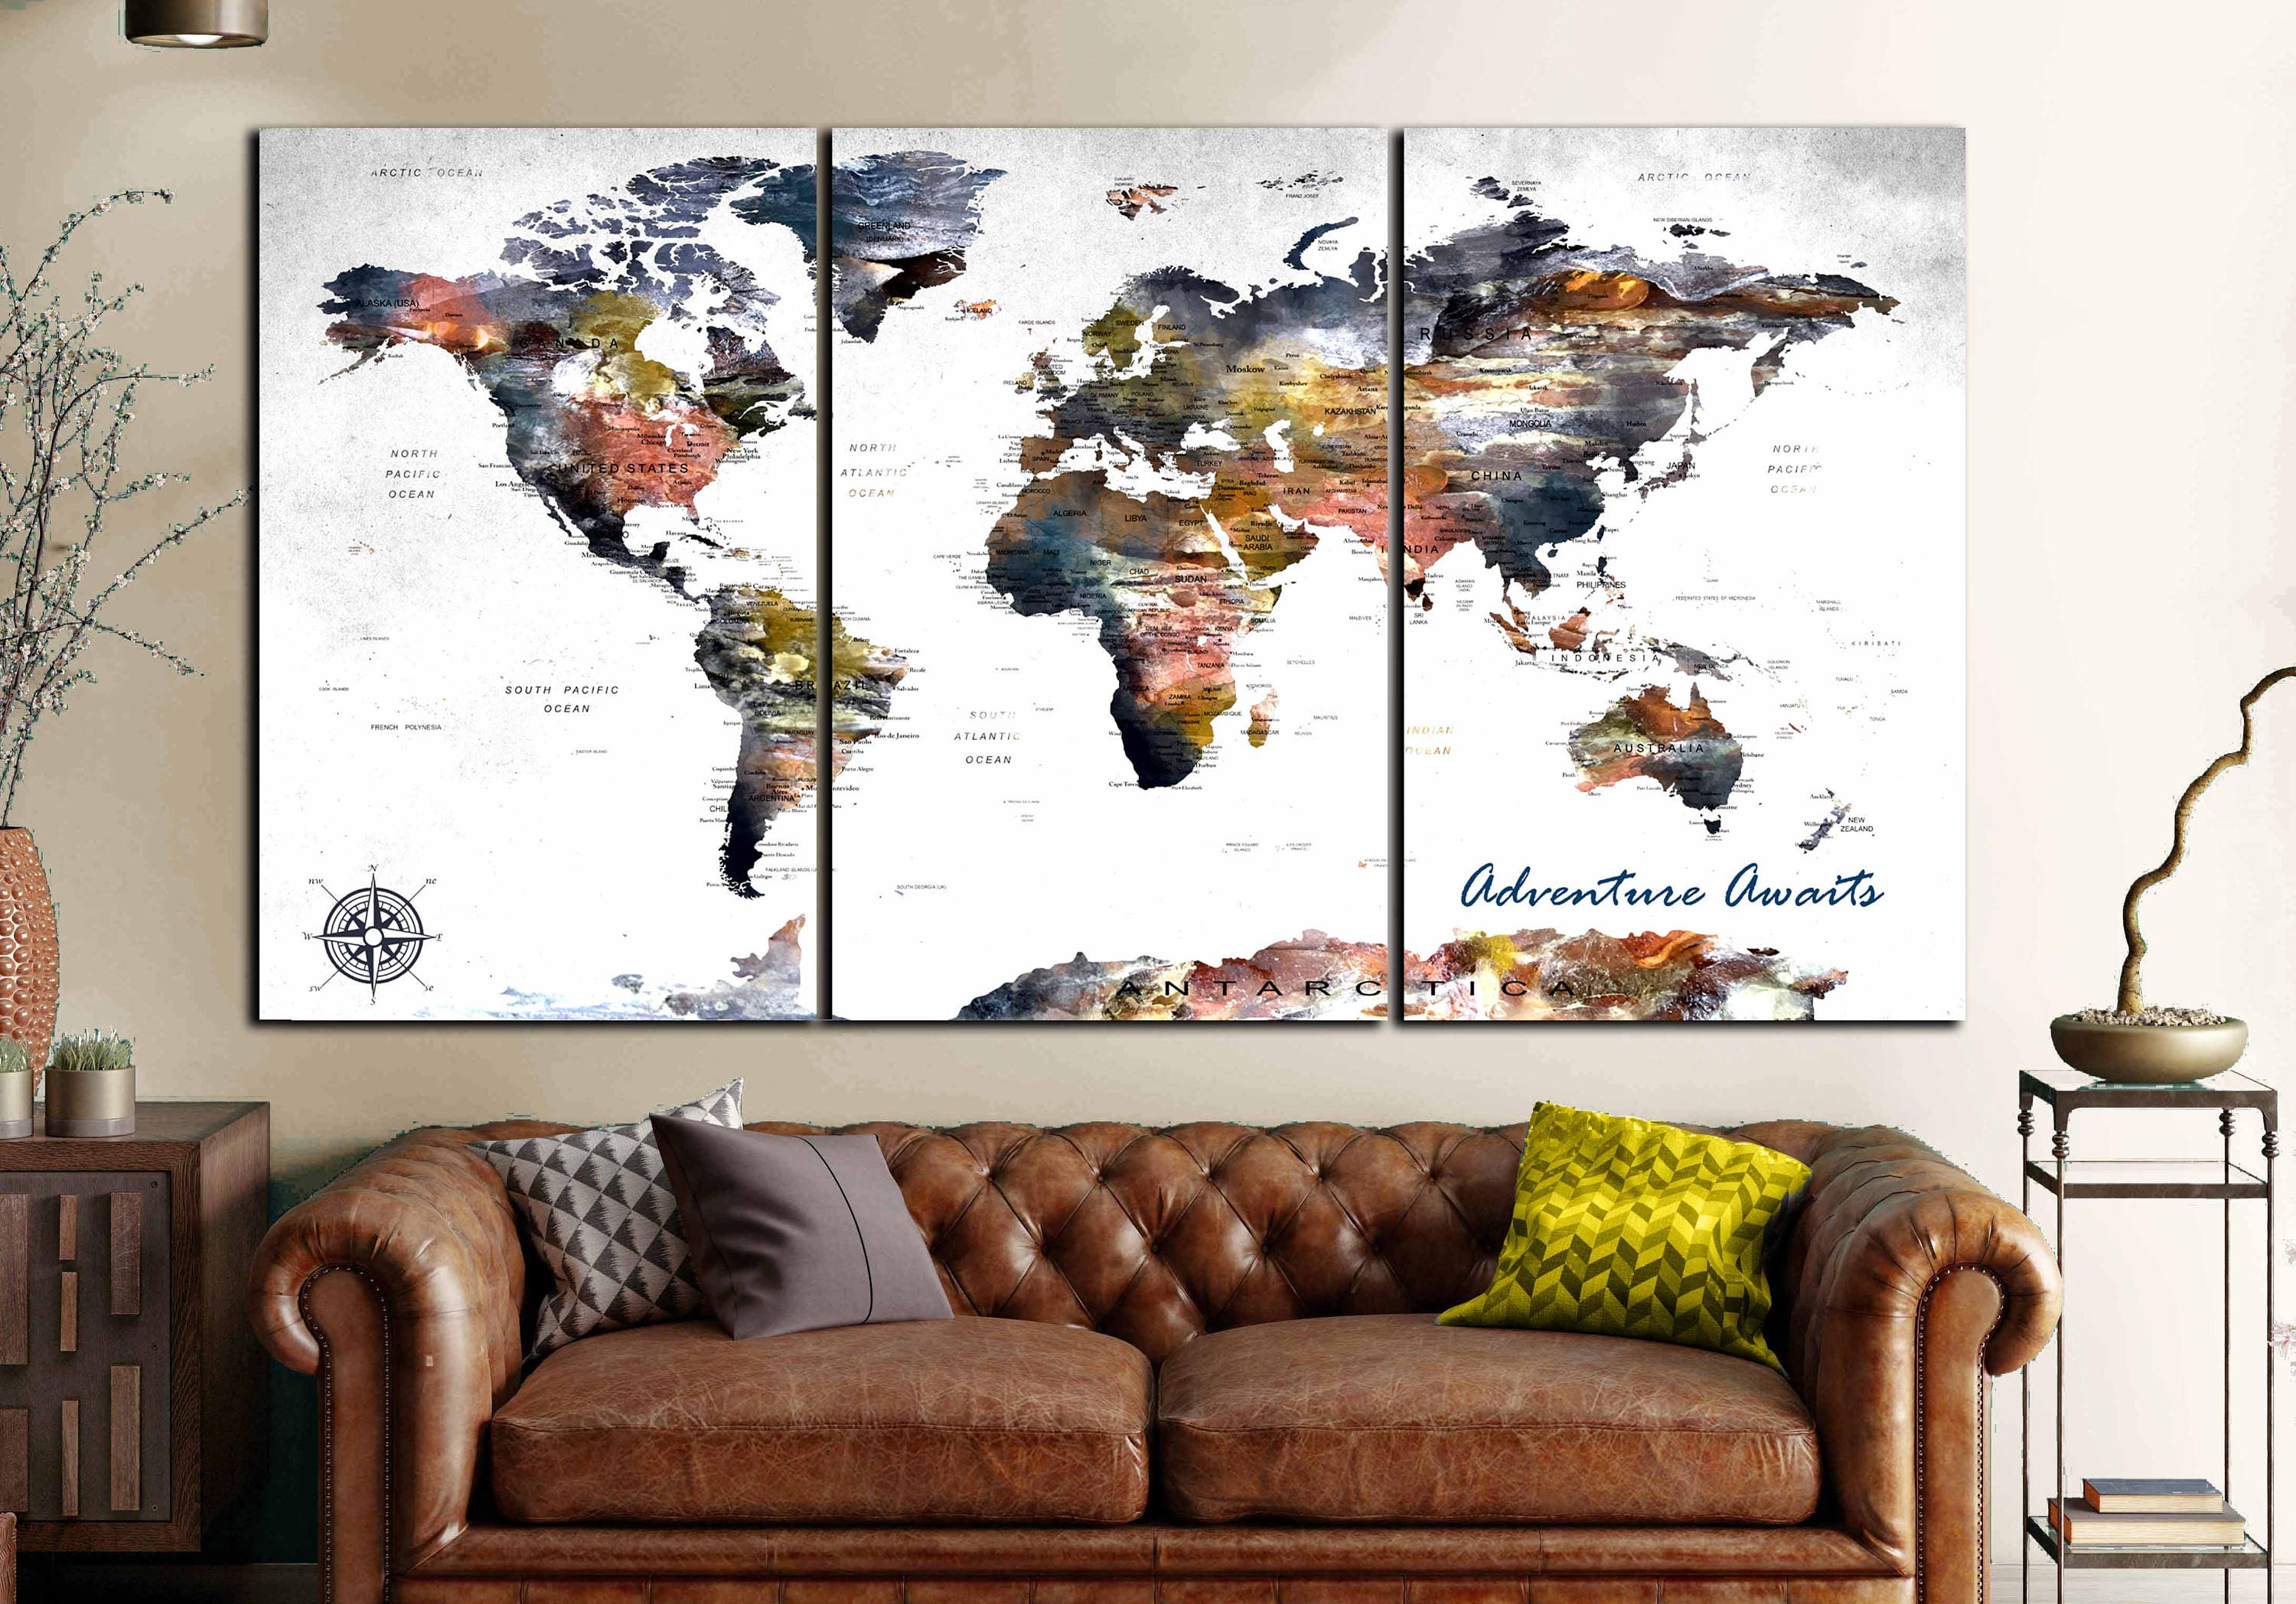 World map canvaslarge world mapworld map wall artlarge map panels world map canvaslarge world mapworld map wall artlarge map panelstravel mappush pin mapworld map artabstract world map artcustom map gumiabroncs Choice Image